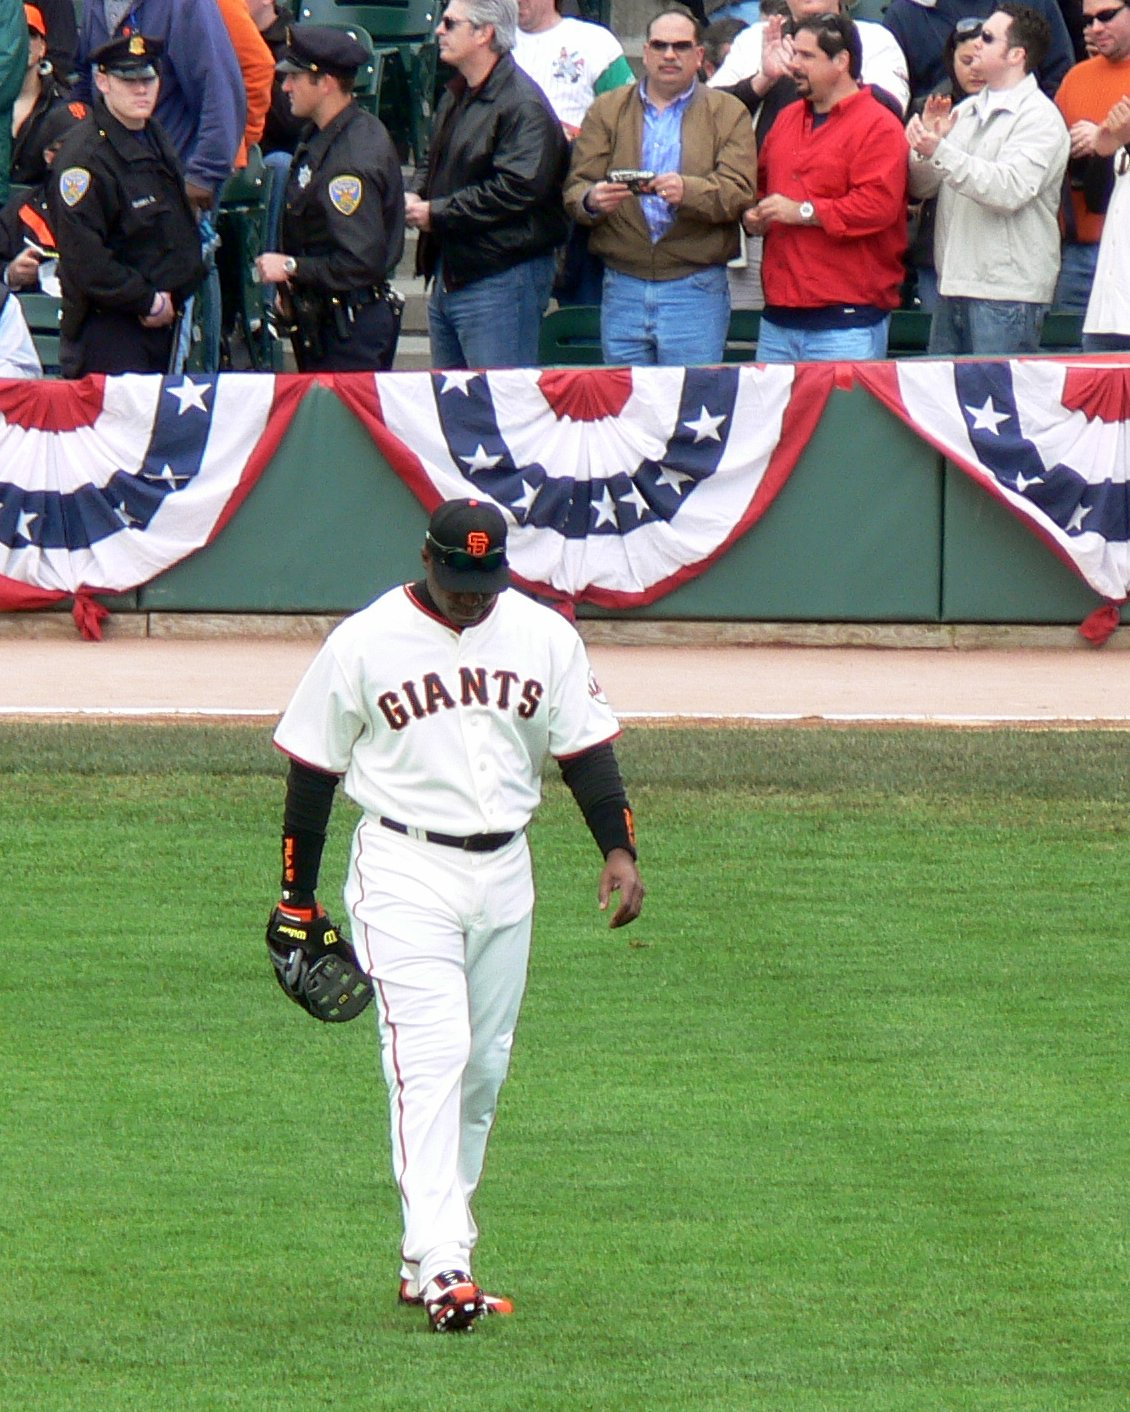 Barry Bonds waiting for the start of a game on April, 6, 2006 at AT&T Park in San Francisco, California. Bonds, along with many other MLB players, are unfairly kept out of the Hall of Fame, making the honor not as prestigious.